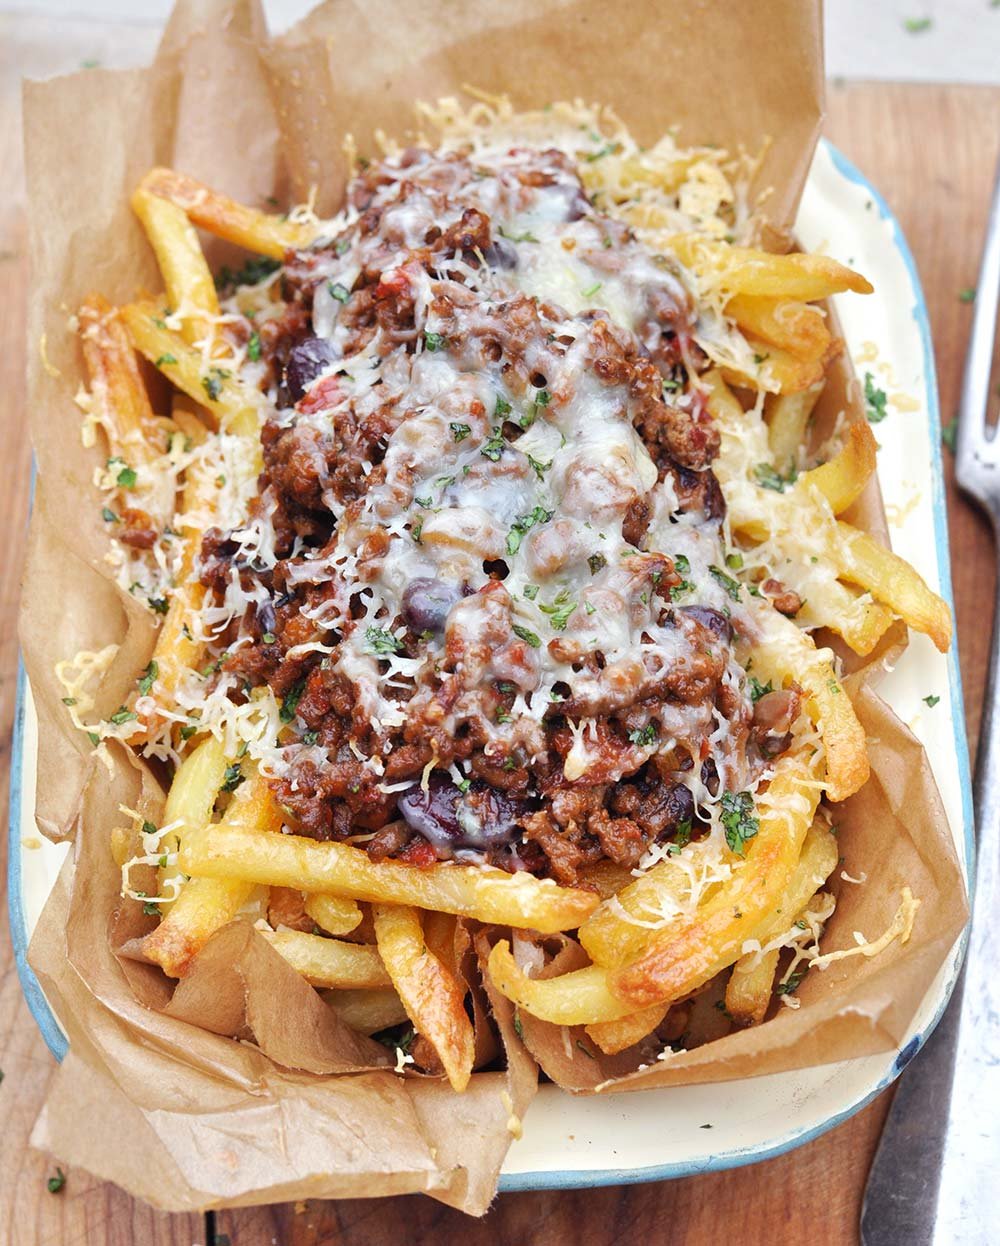 Fries with Chili con Carne in the United States